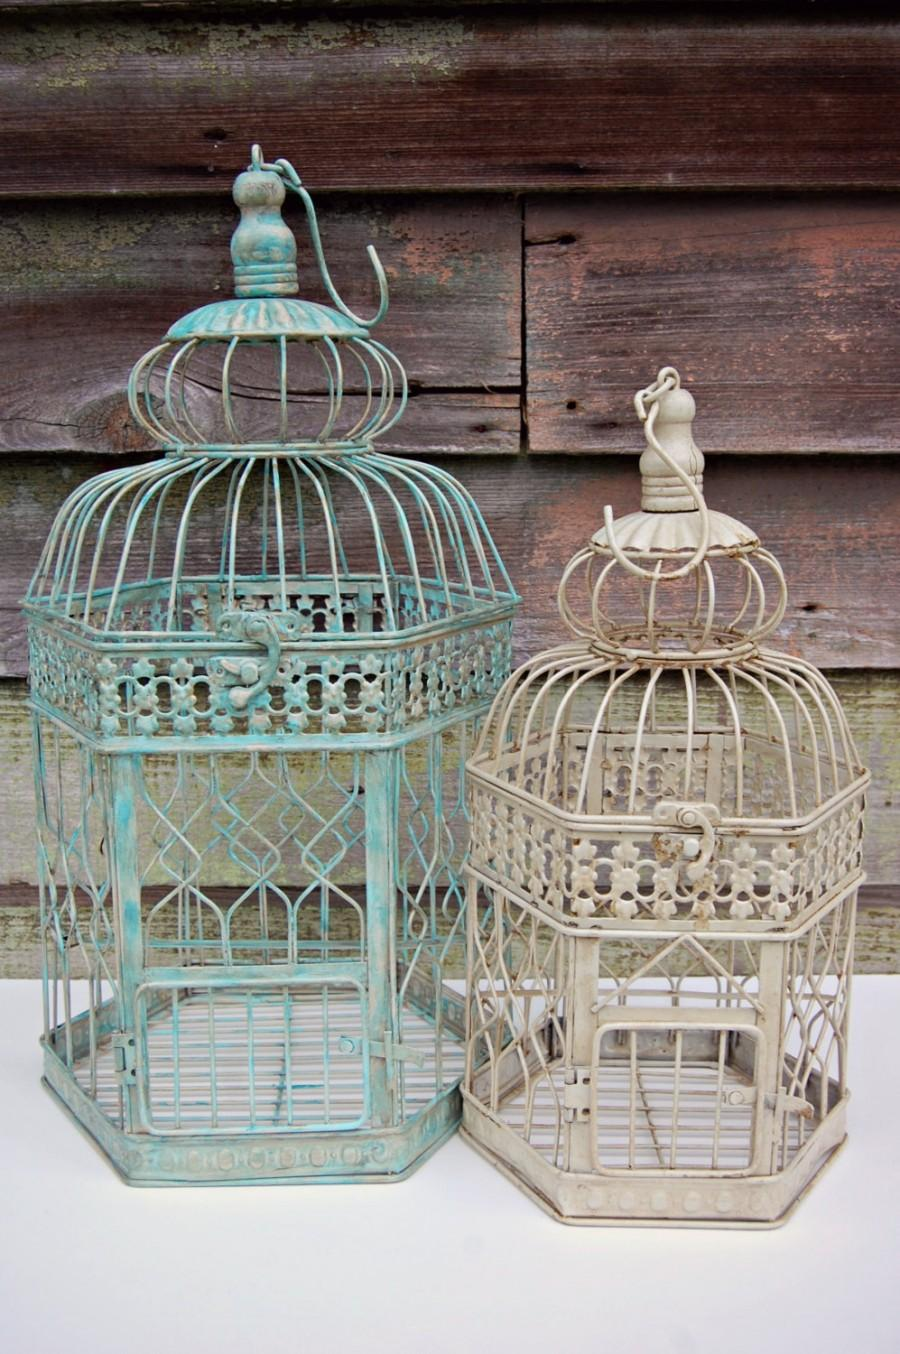 sale 14 wedding bird cage card holderwedding card boxwedding table centerpiecewedding card holderbaby showernurser